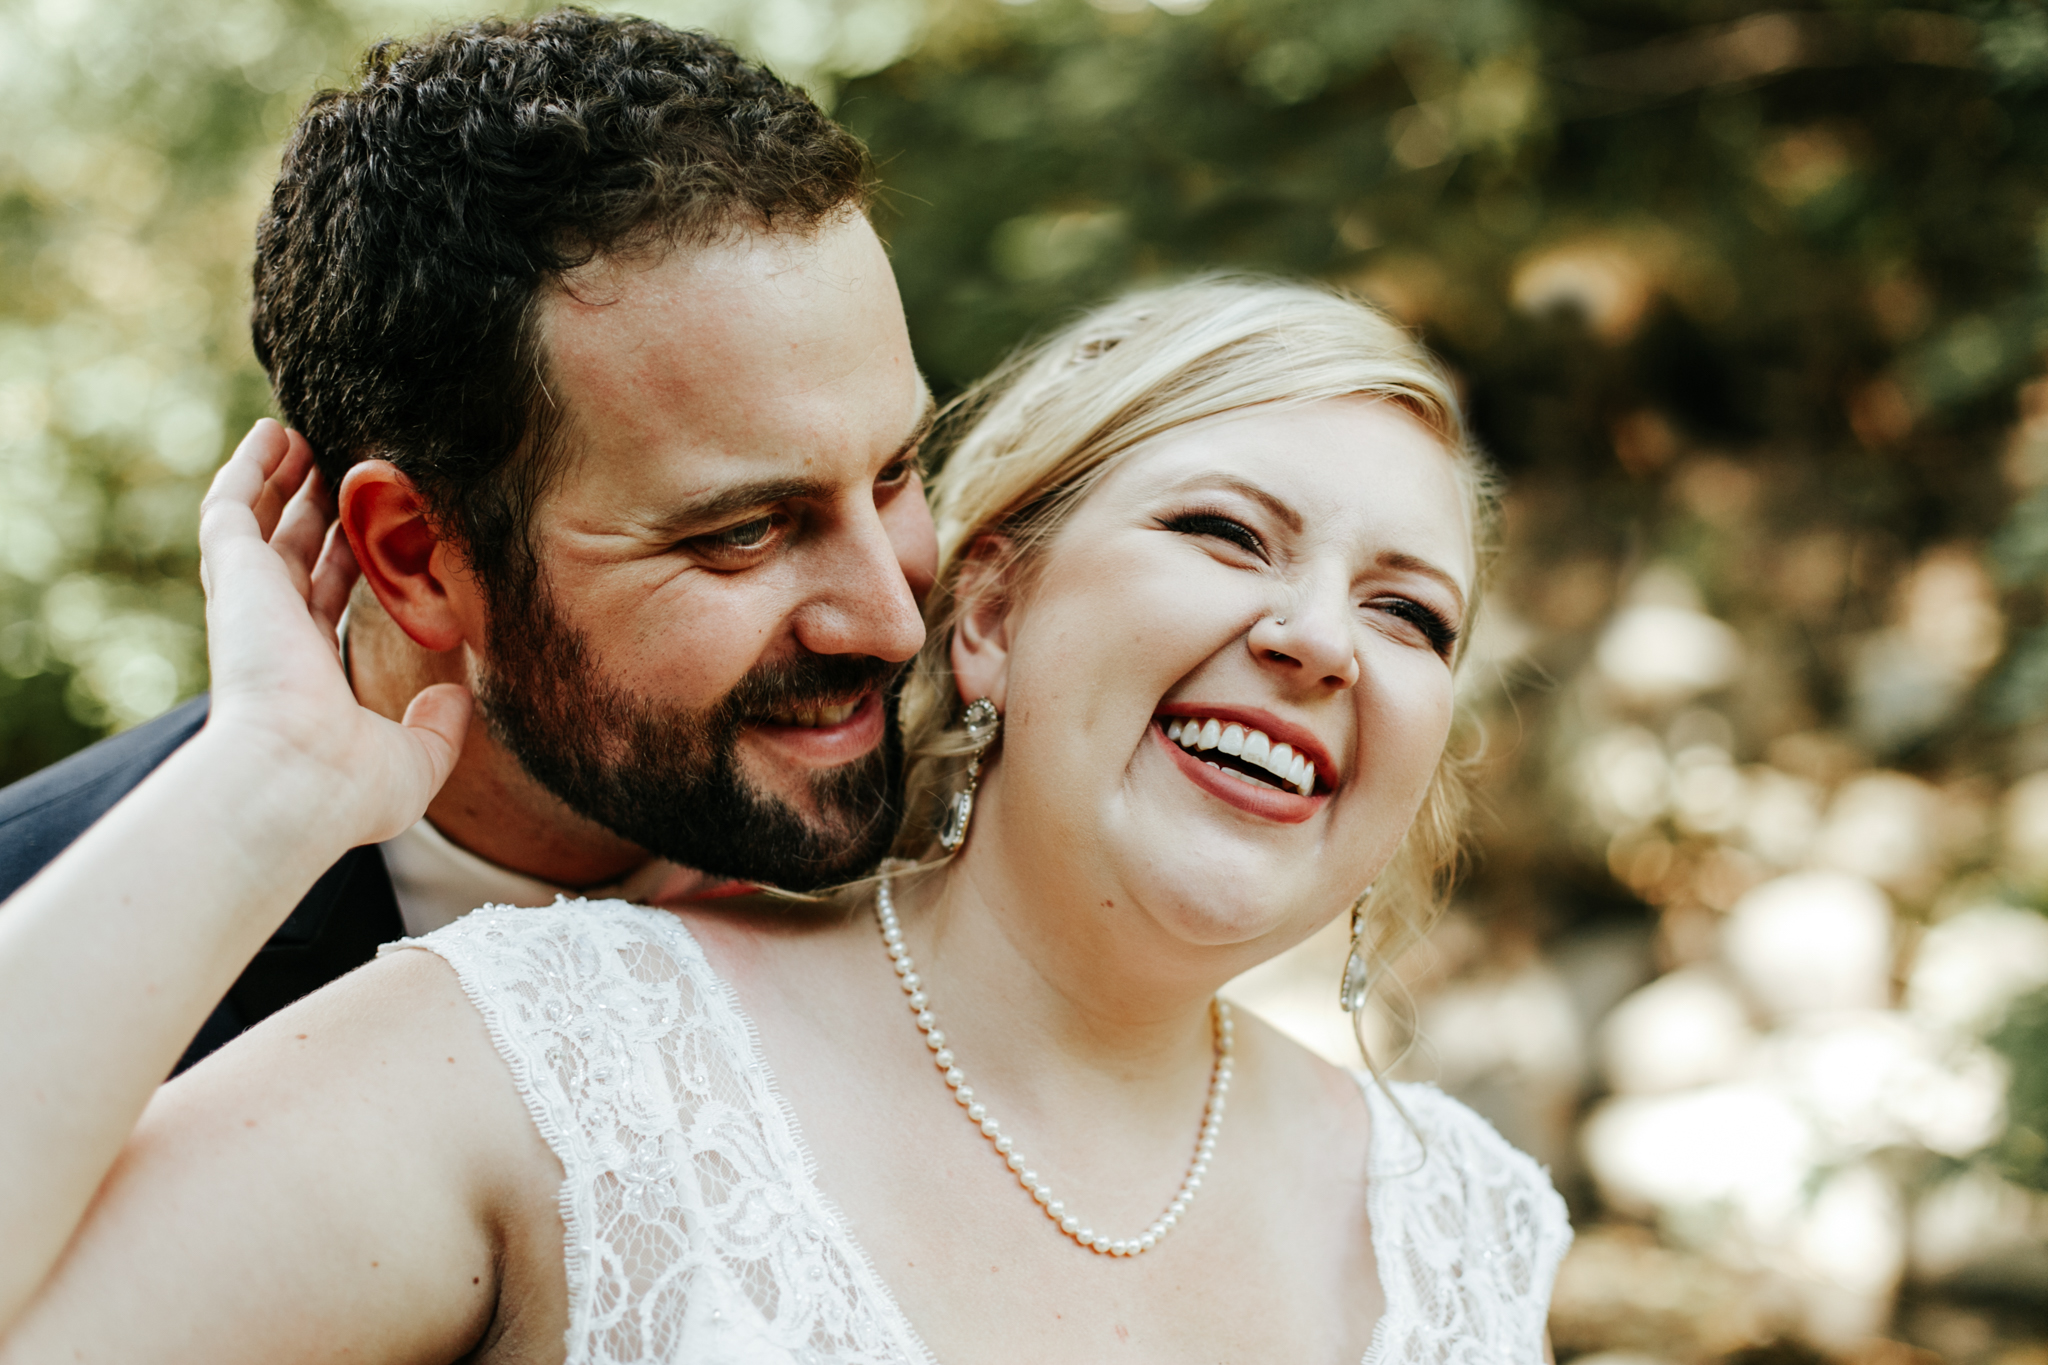 red-deer-wedding-photographer-love-and-be-loved-photography-emily-gab-photo-image-picture-154.jpg